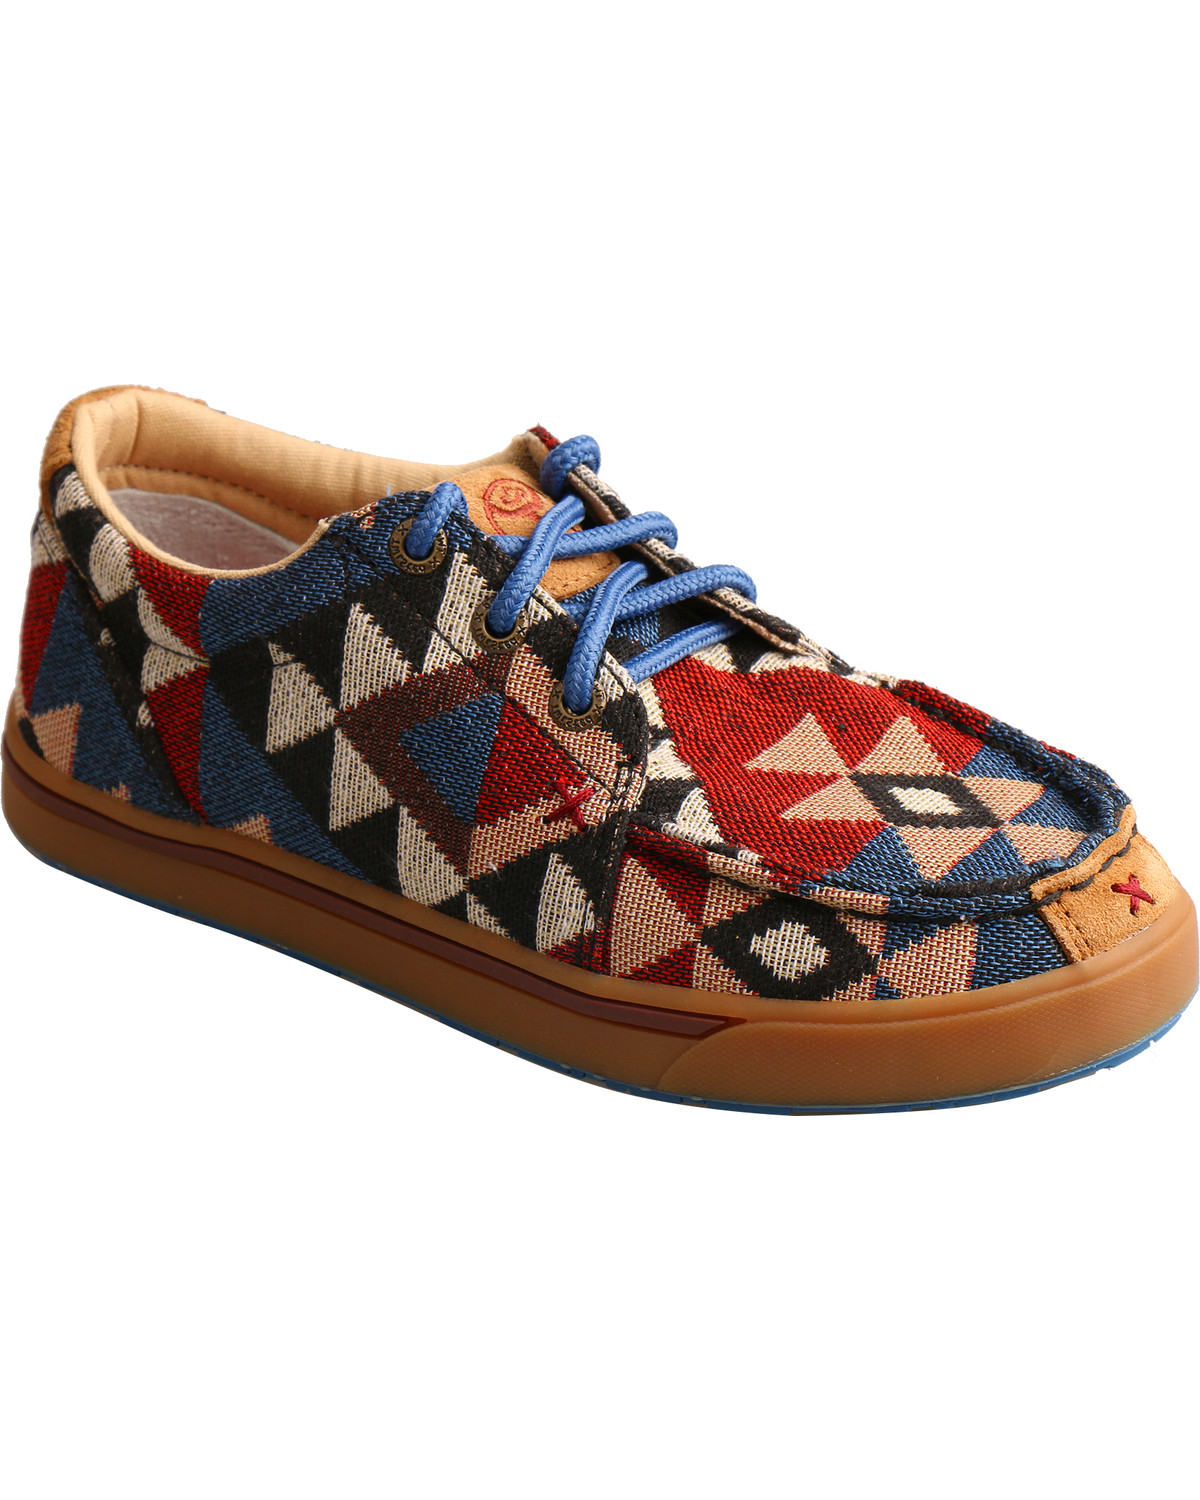 d7745a632f71 Zoomed Image Hooey Lopers by Twisted X Youth Boys' Pattern Canvas Shoes -  Moc Toe, Multi